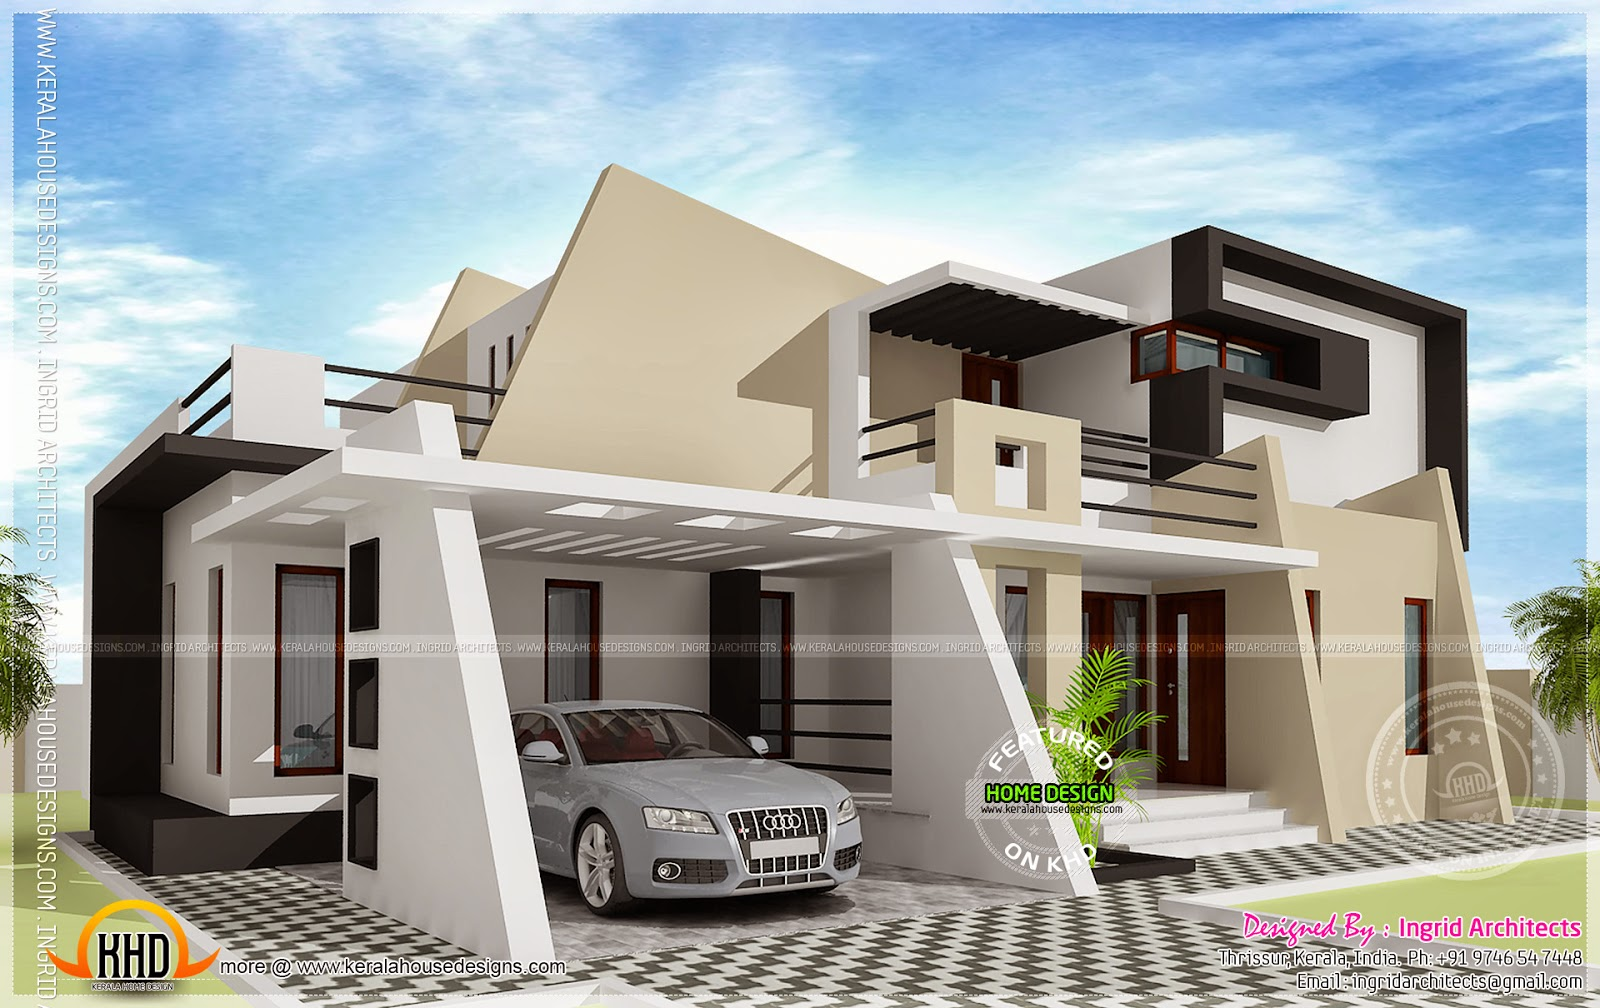 March 2014 kerala home design and floor plans for Contemporary cabin plans